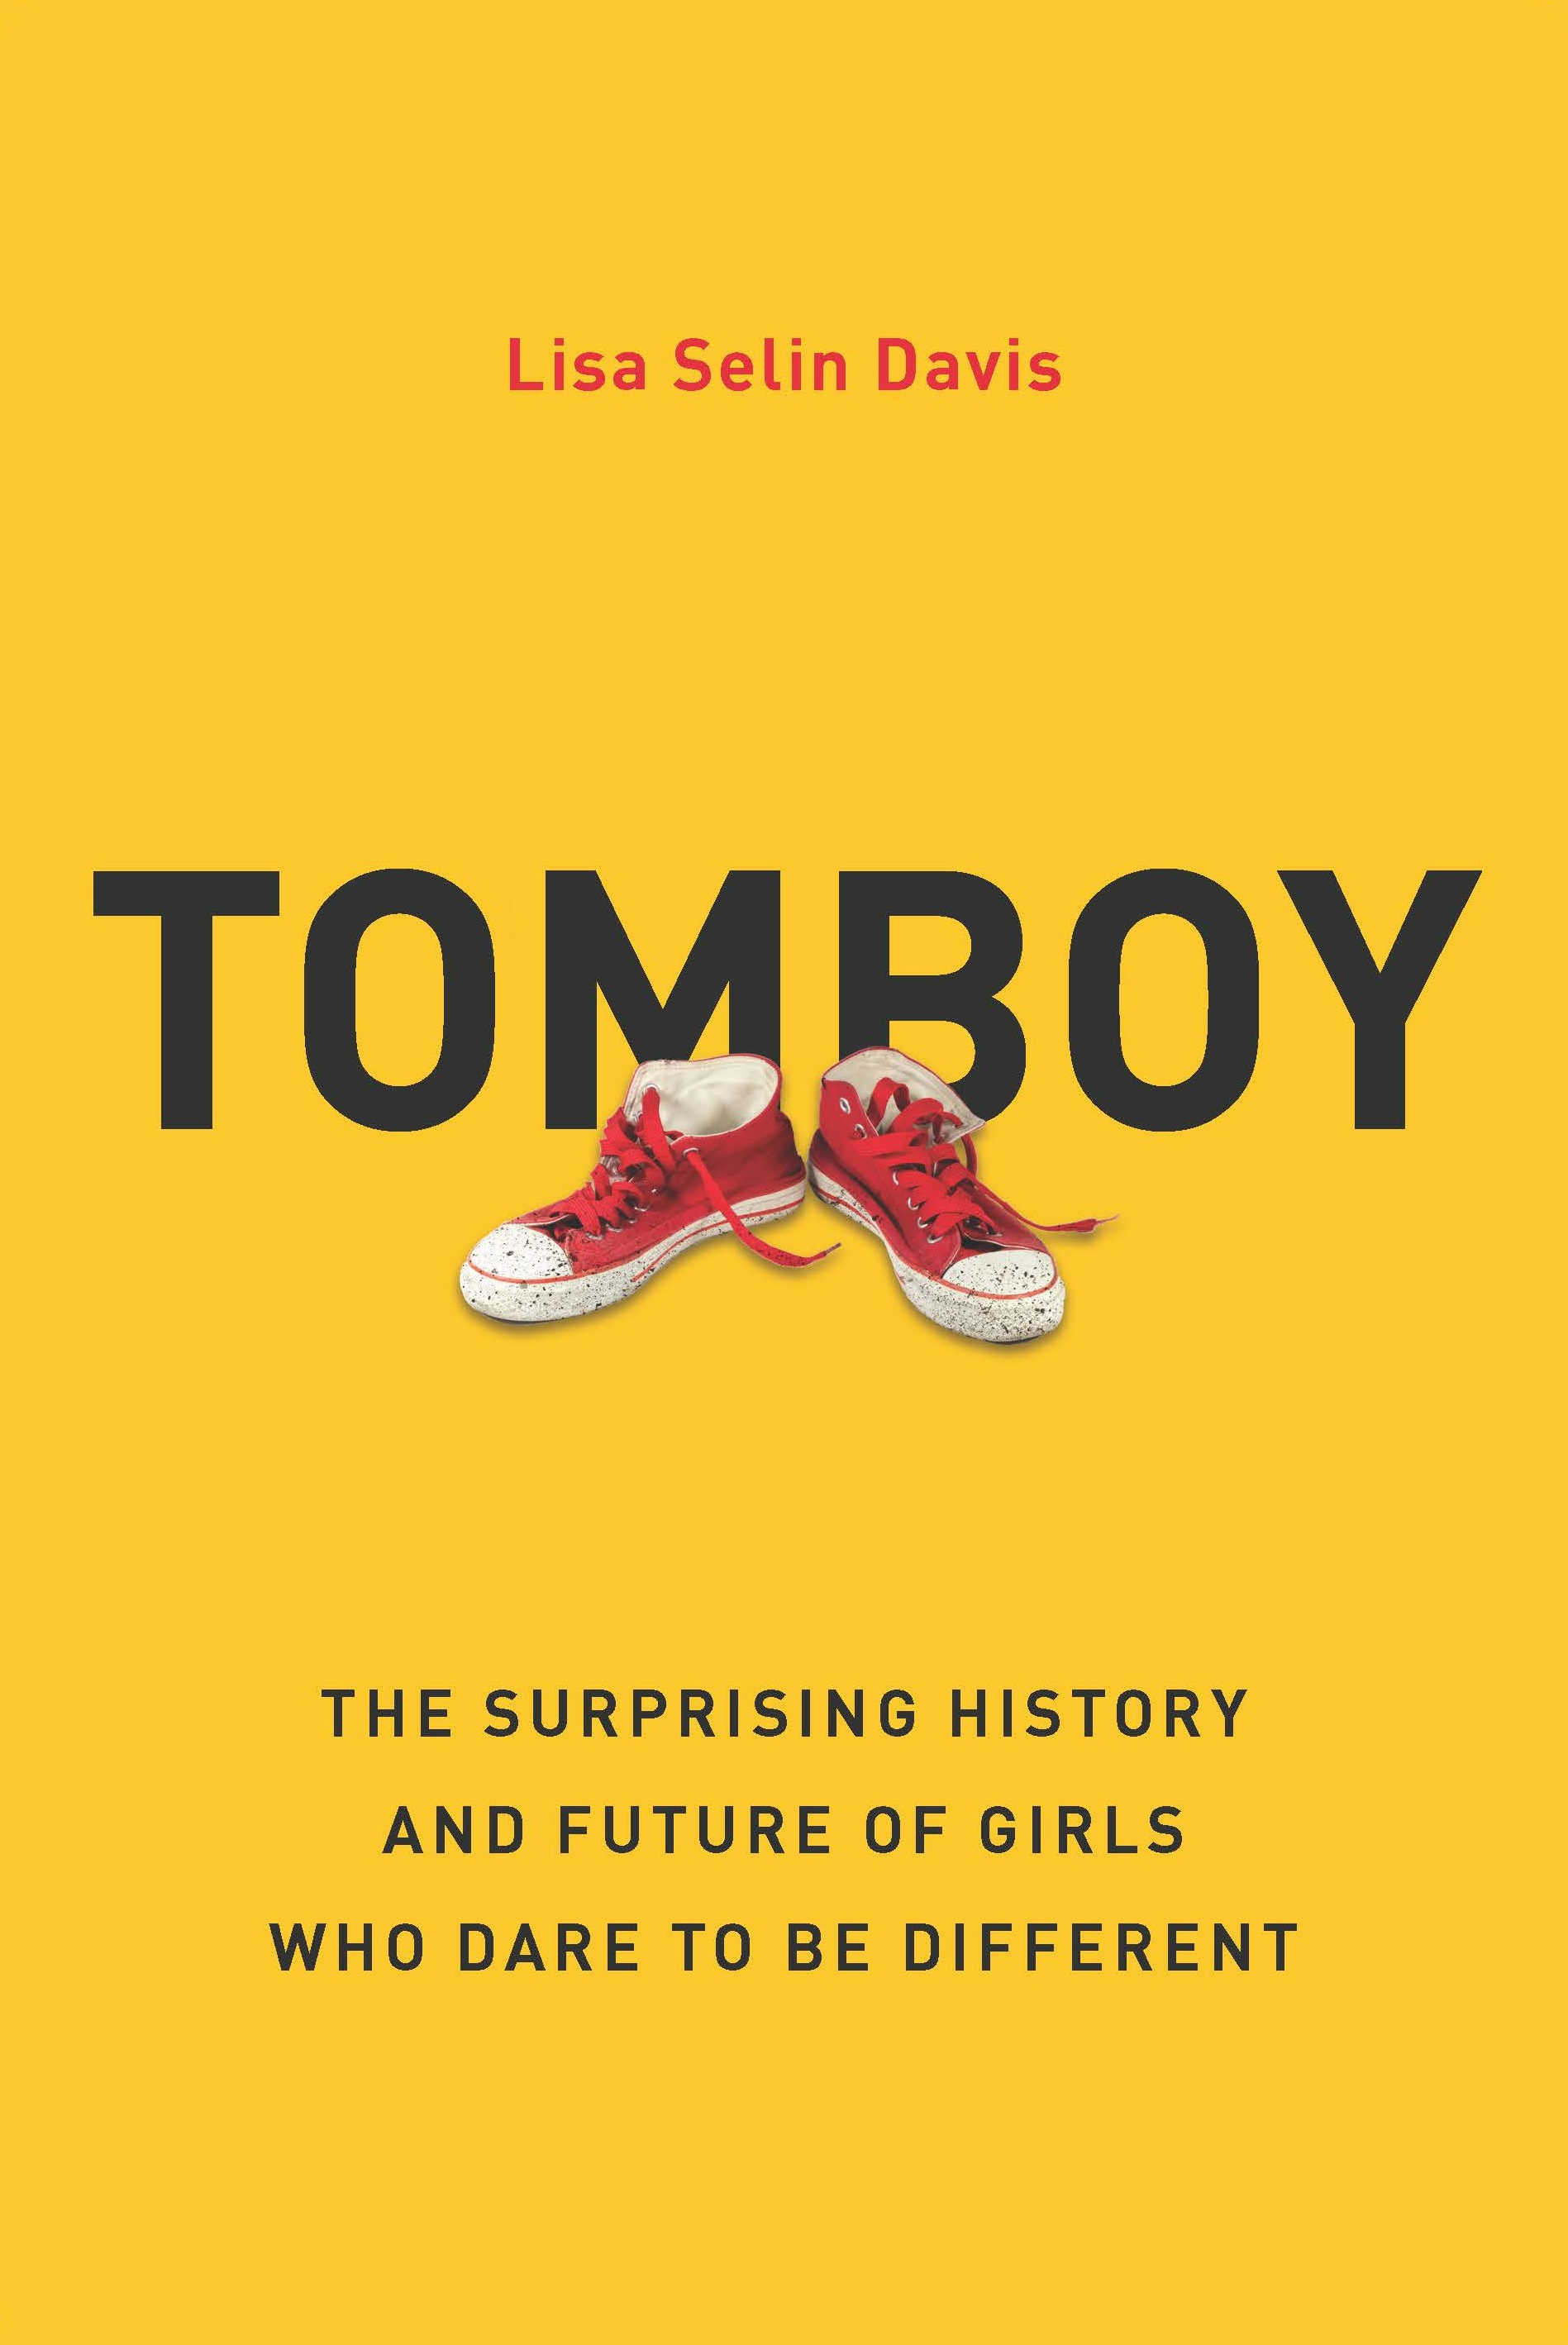 Virtual Book Launch: Tomboy by Lisa Selin Davis in conversation with Lauren Sandler